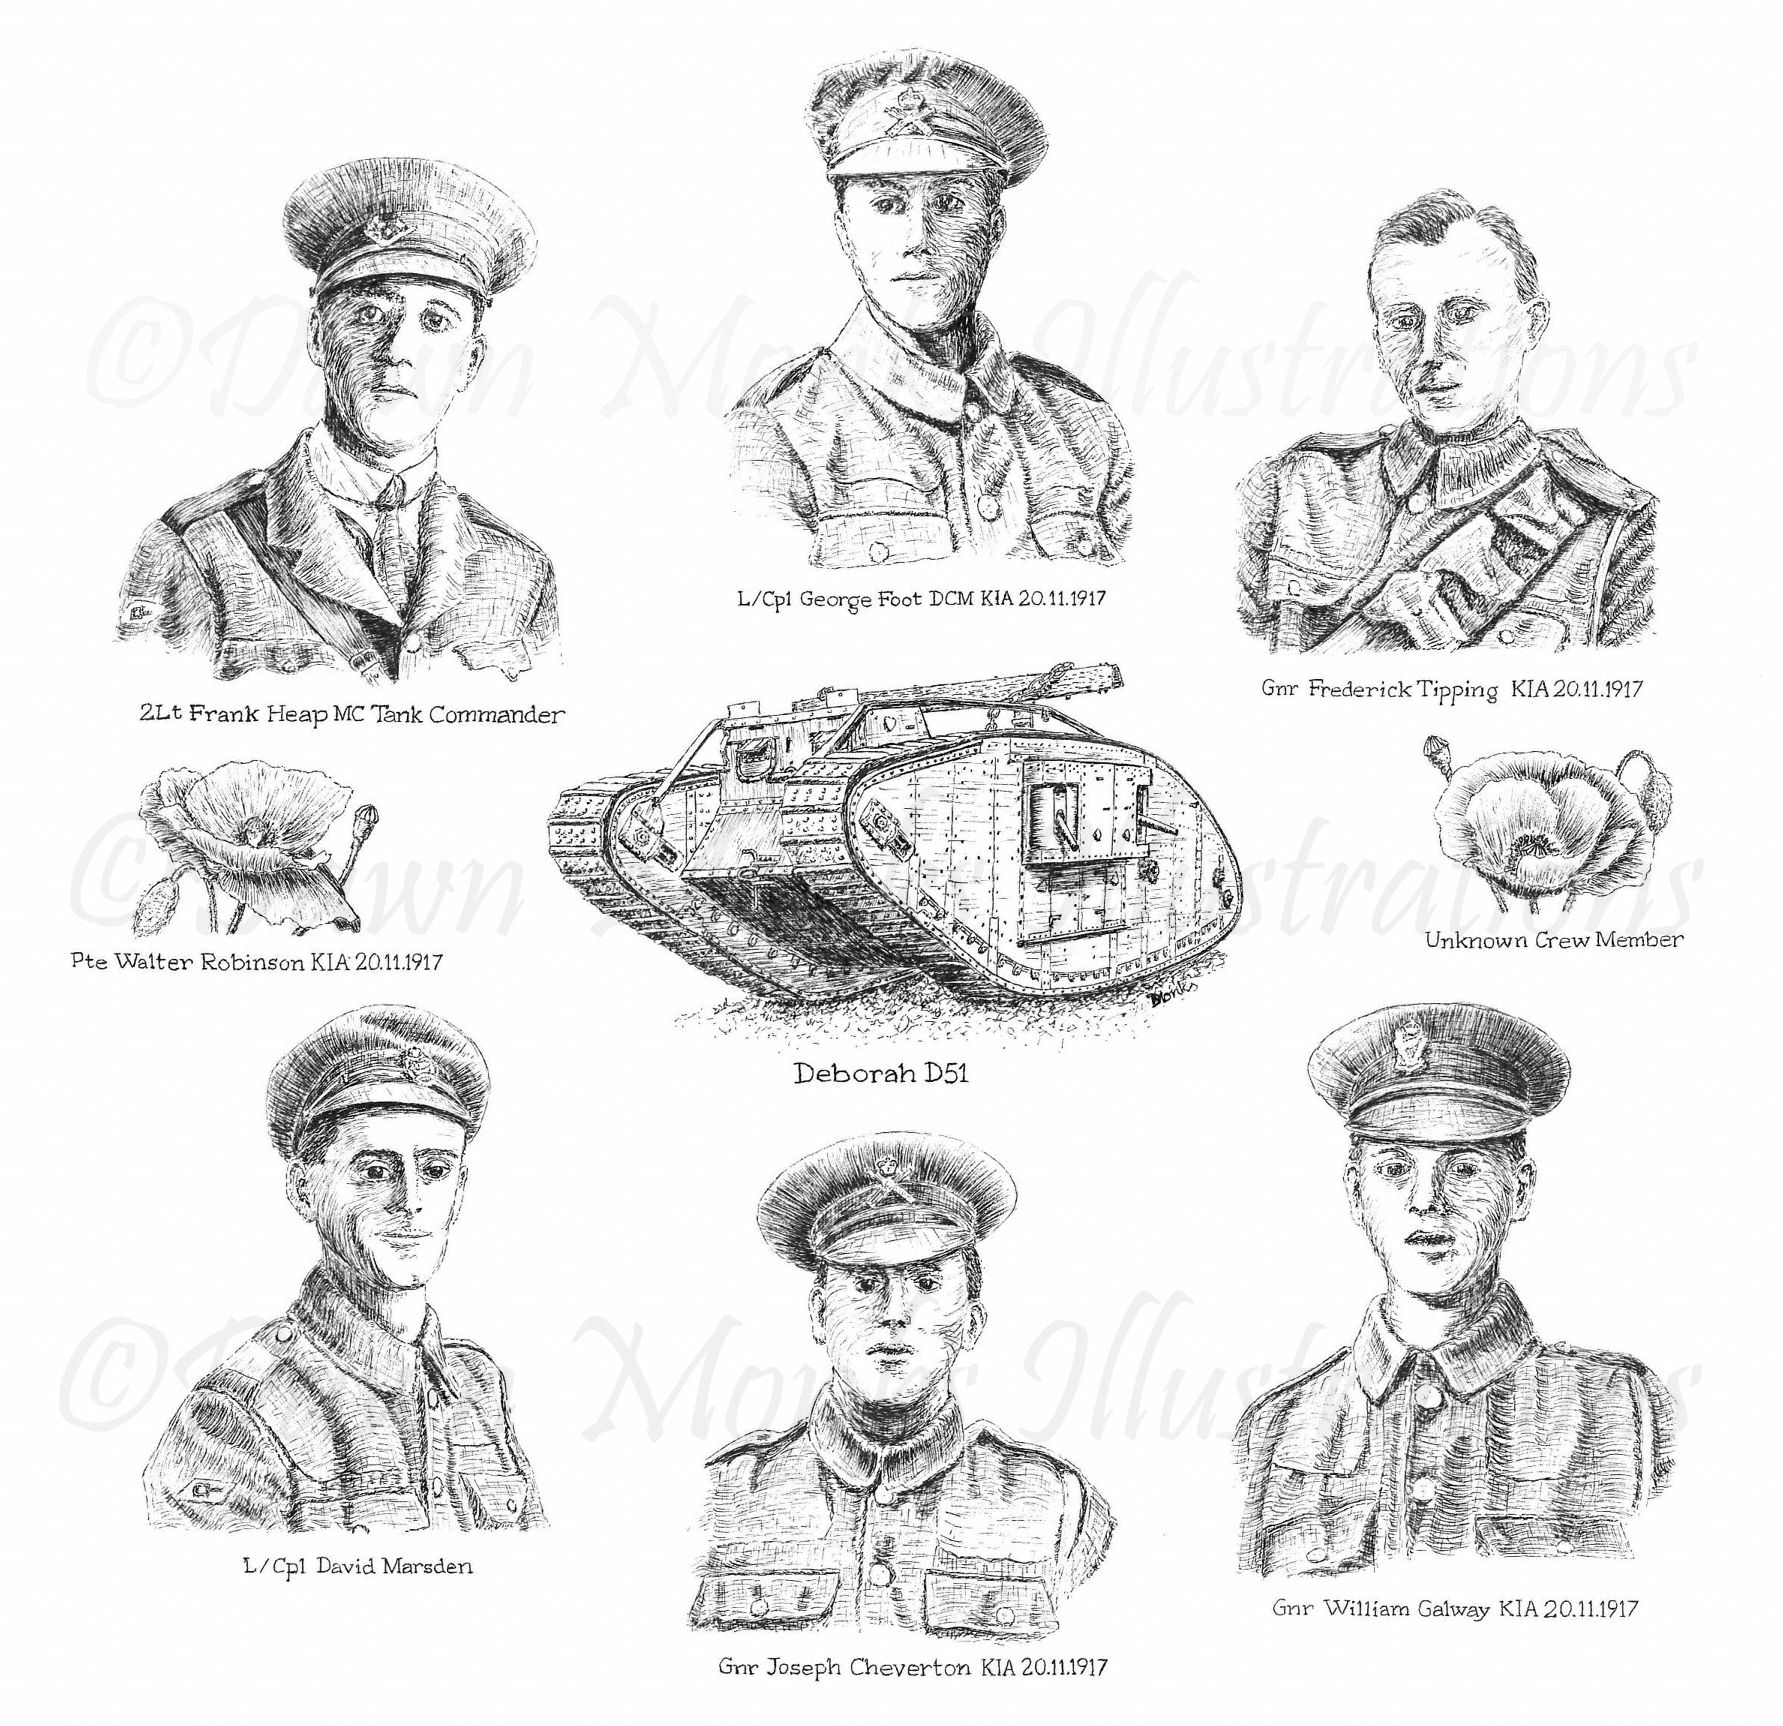 Dawn Monks Pen & Ink Illustration - WW1 Tank Crew - Deborah D51